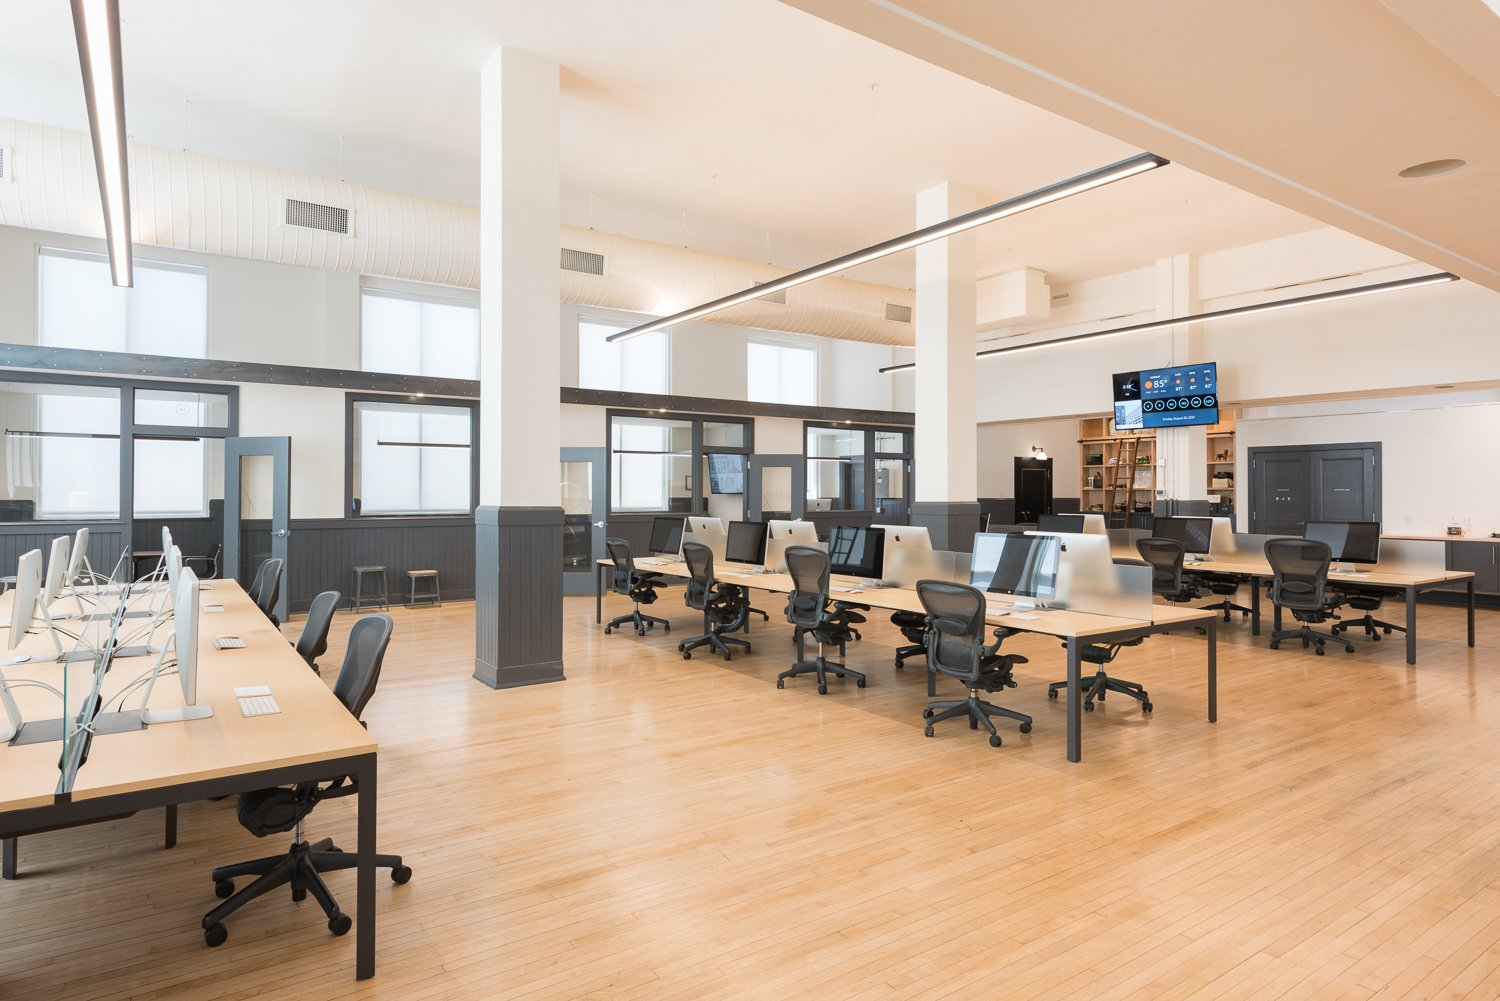 Photo 10 of 16 in A Historic U.S. Post Office Is Transformed Into a Digital Agency's New Modern Office